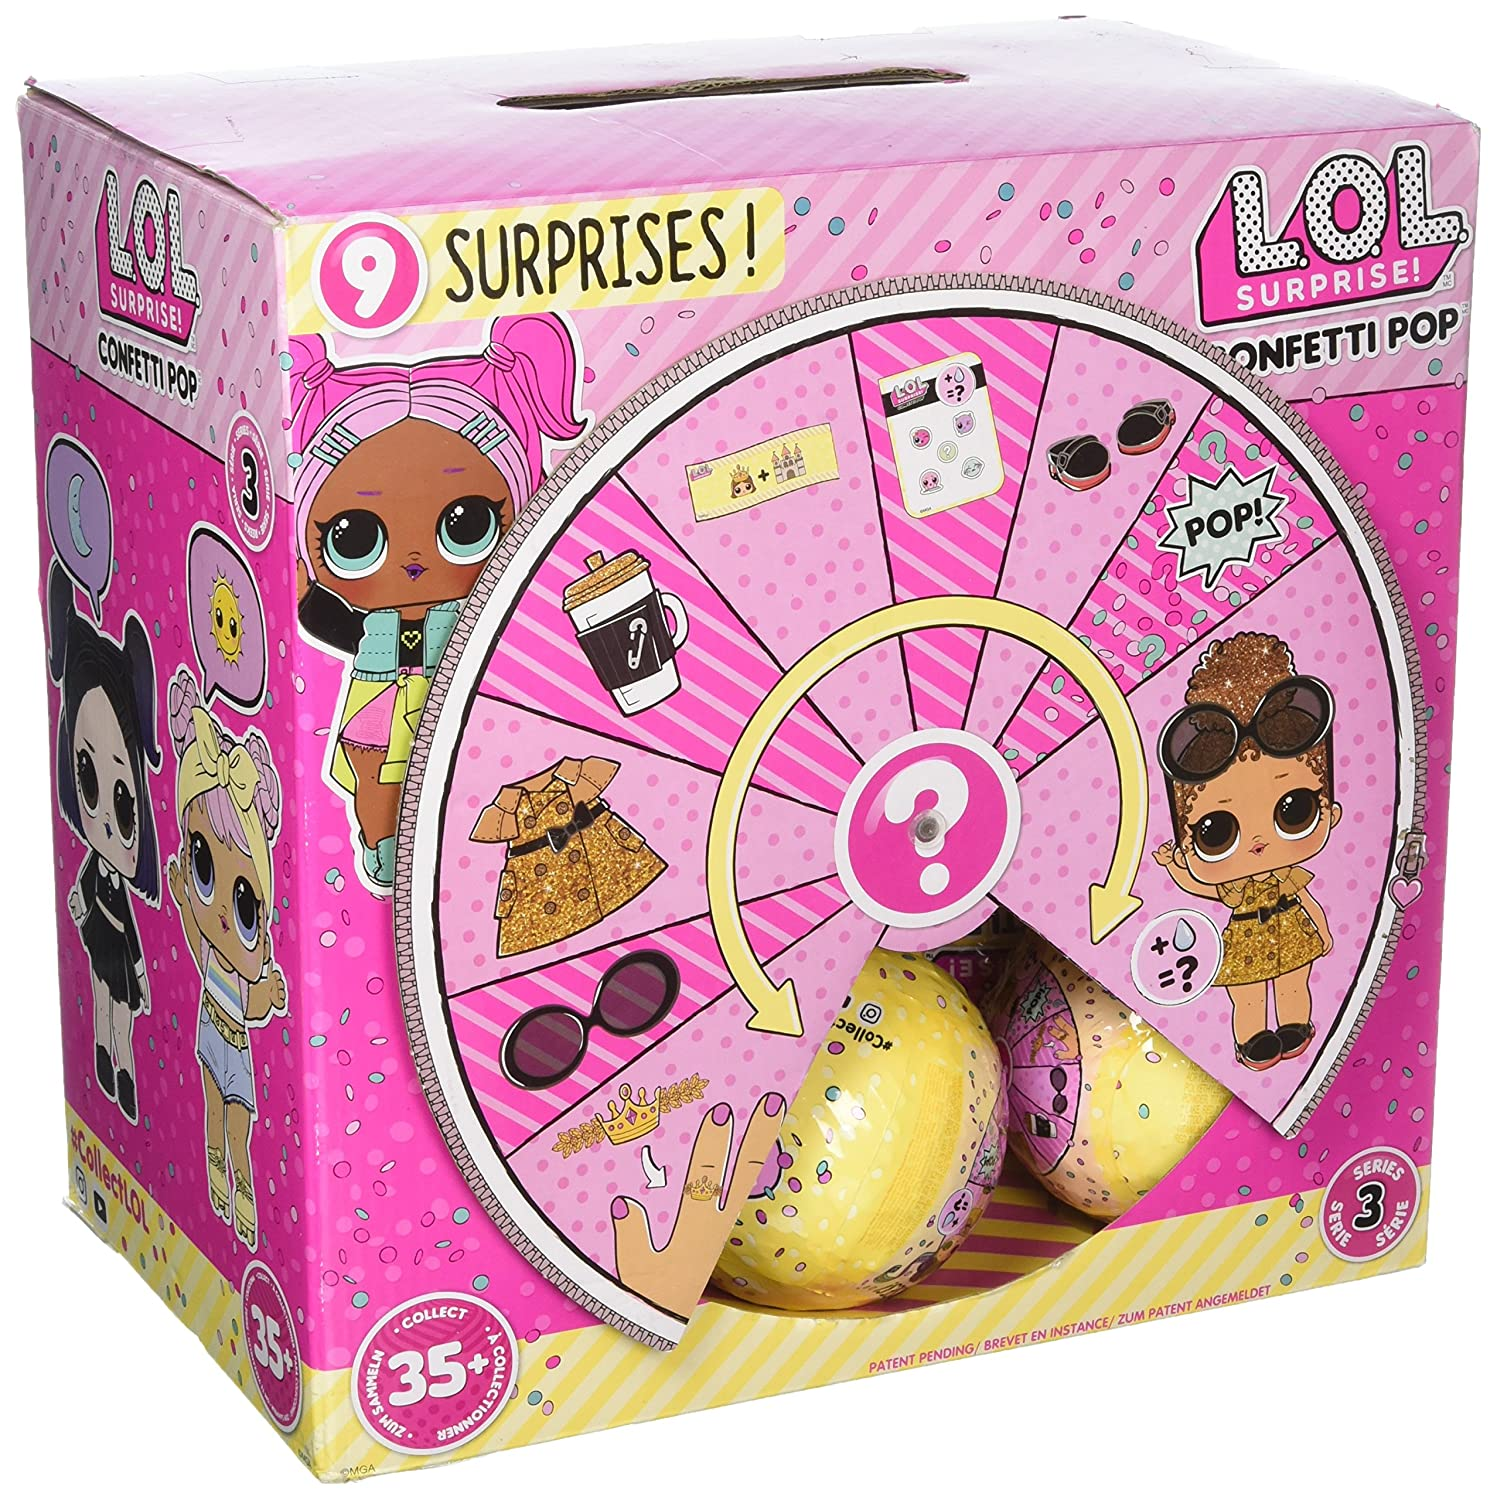 LOL Surprise Authentic SERIES 3 Confetti Pop Wave 2 Big Sisters 1 Doll Ball NEW